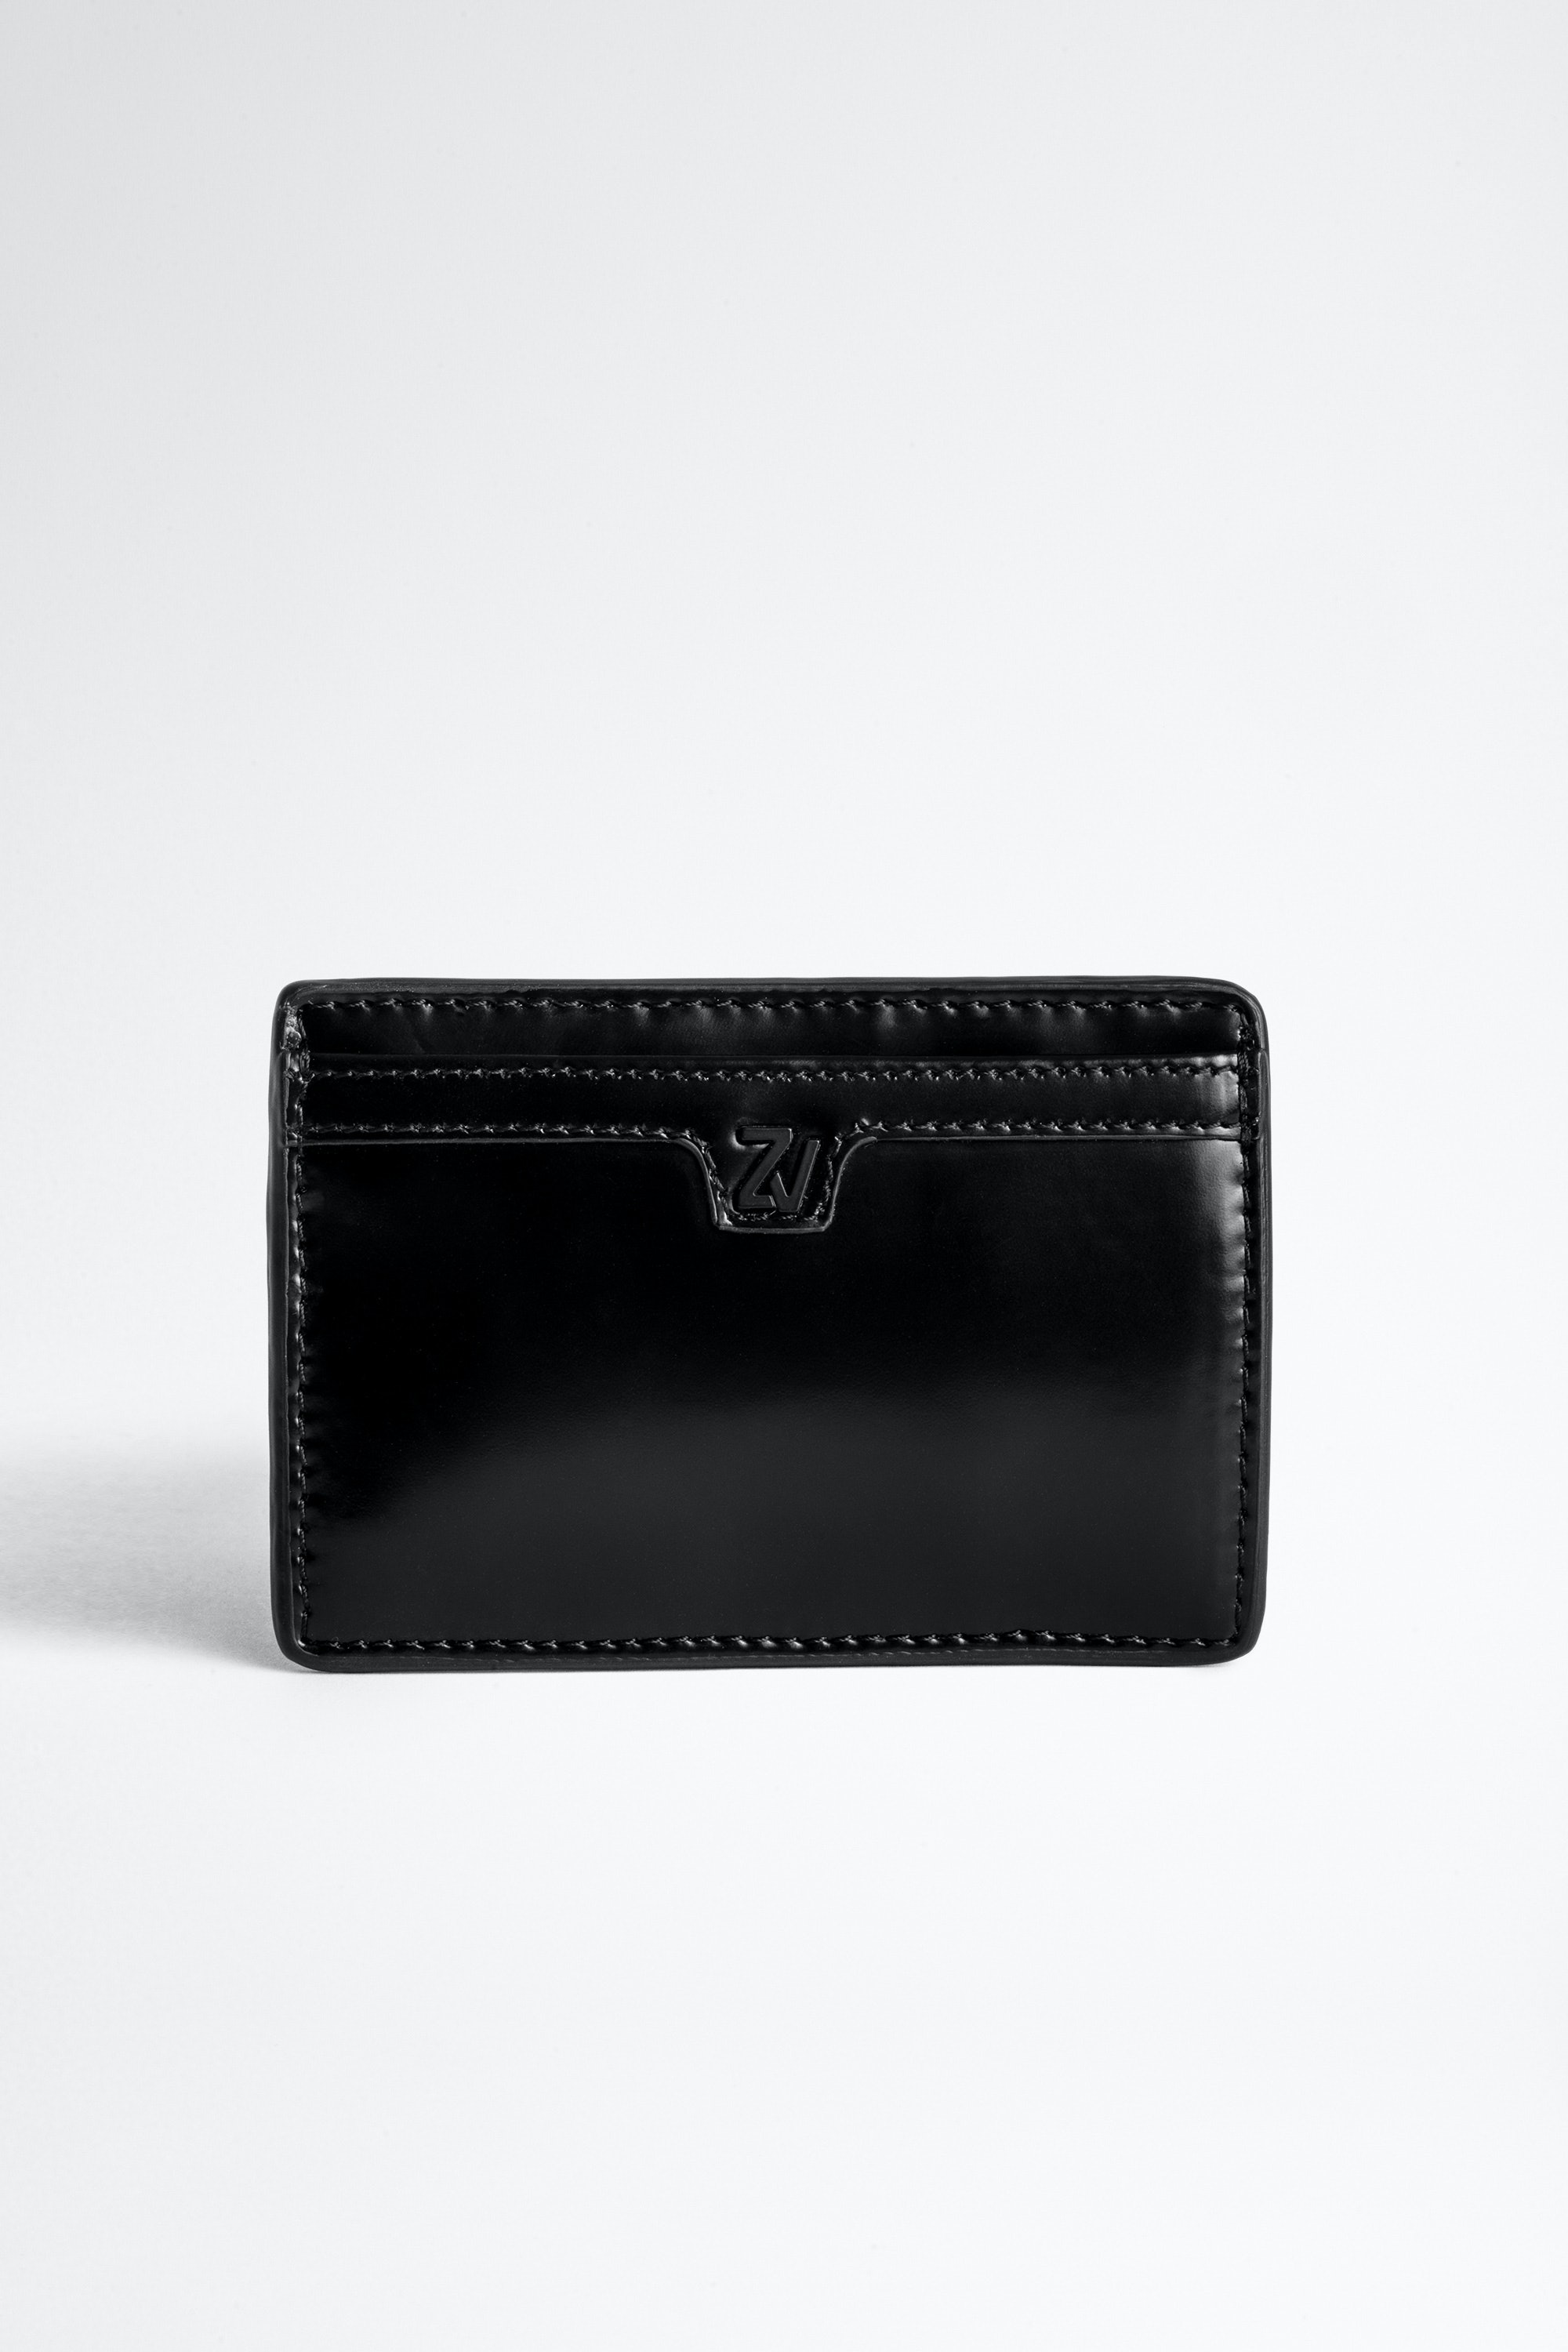 ZV Initiale Niels Card Holder